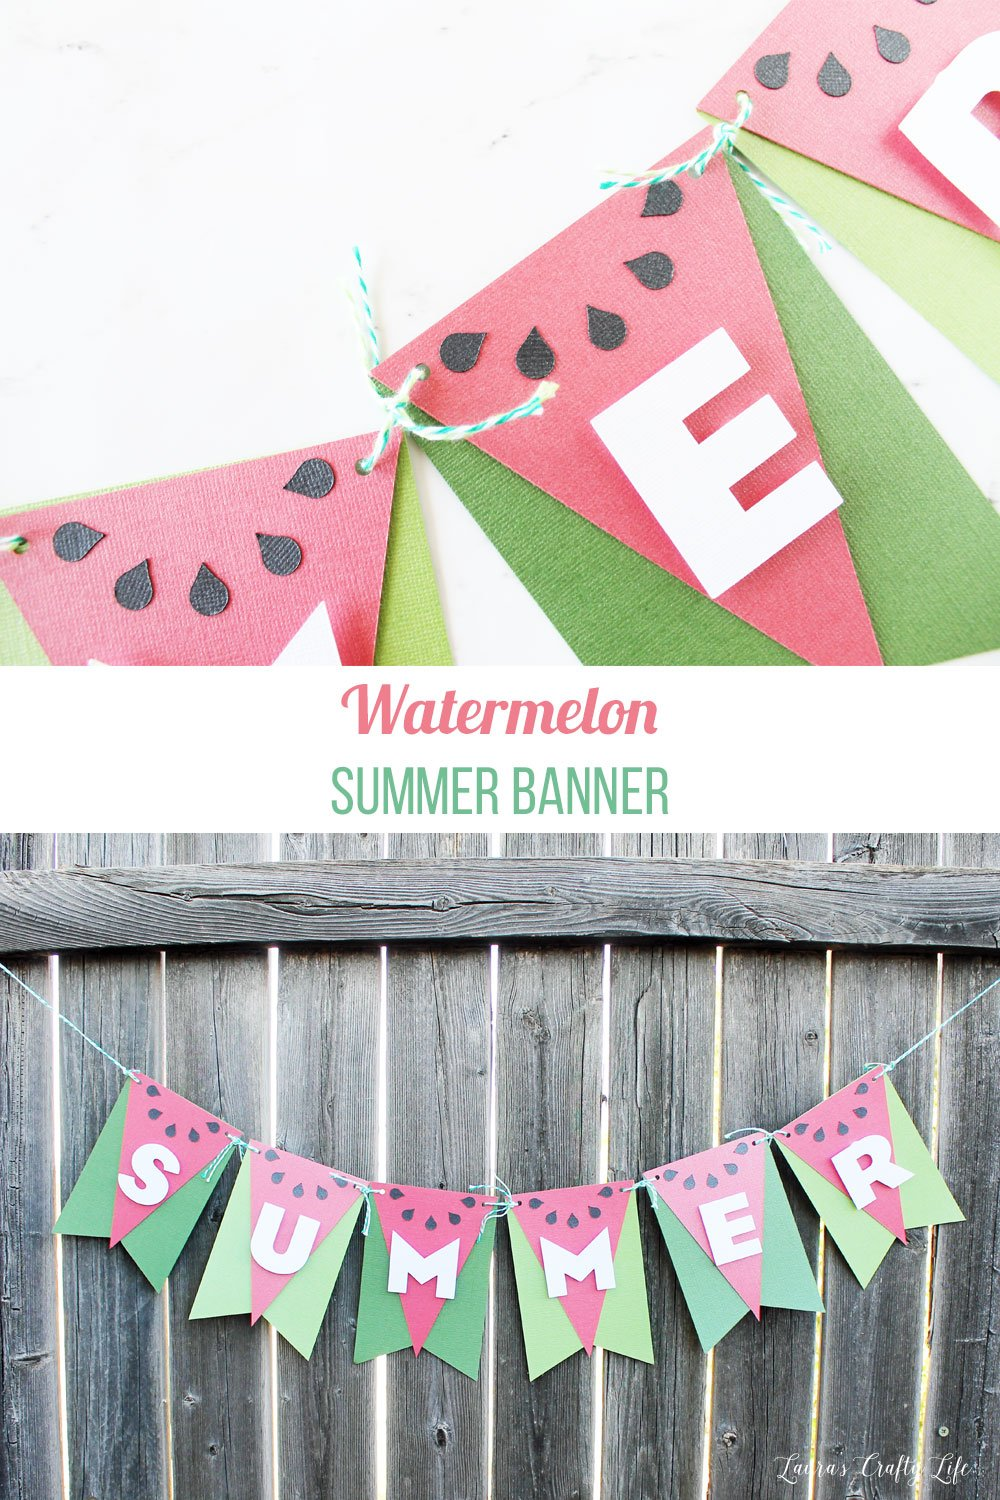 Watermelon Summer Banner tutorial